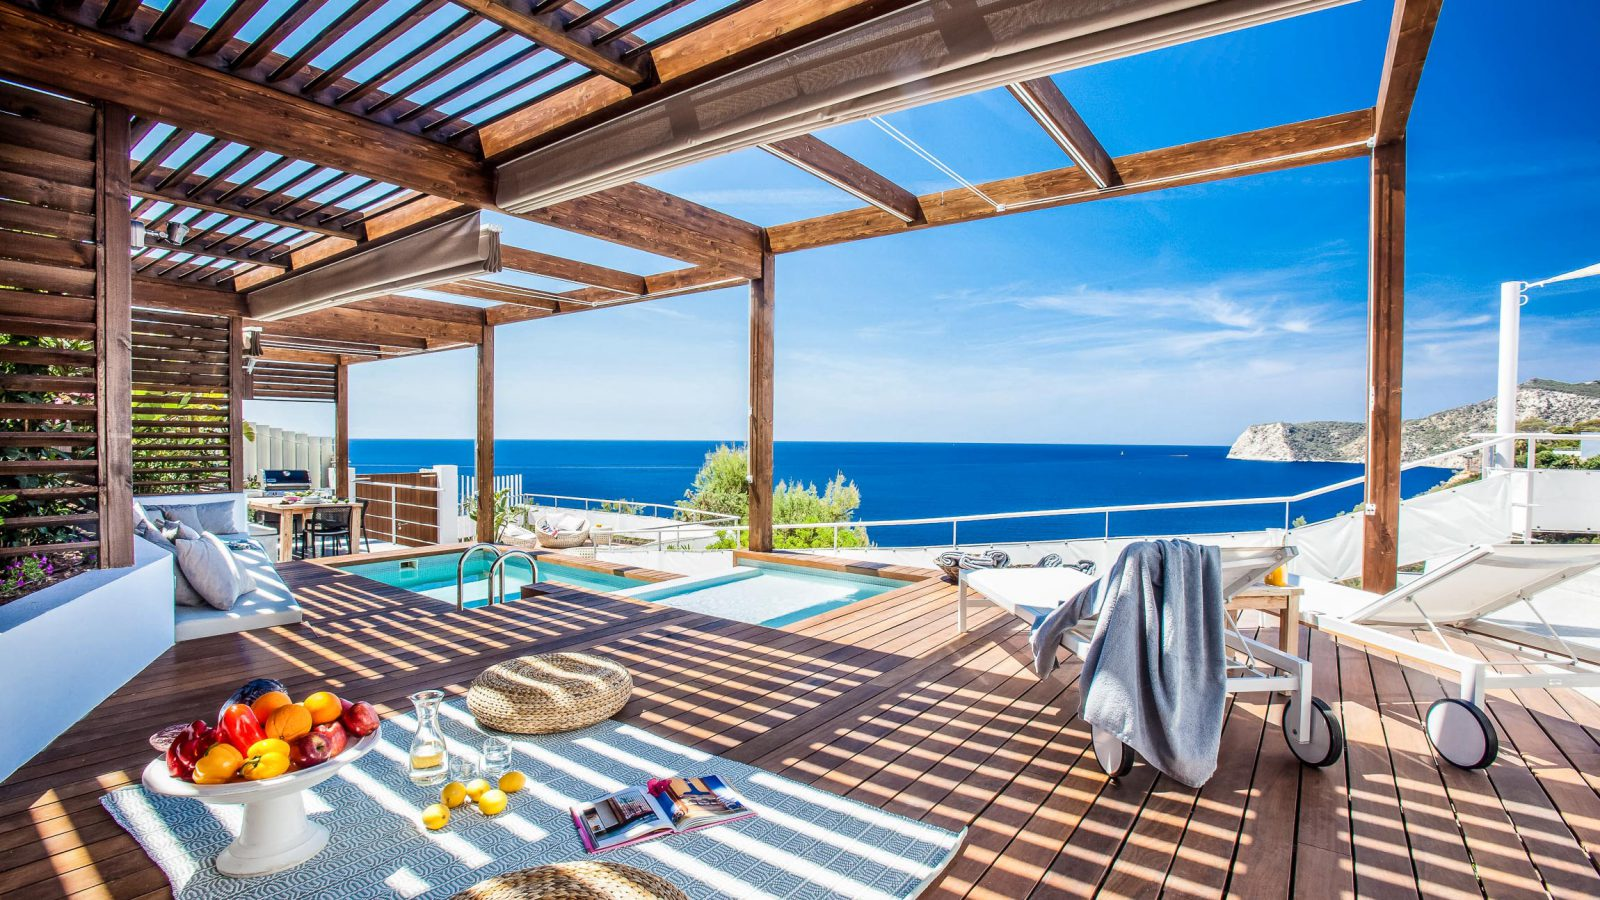 Lies Within The Island'S Most Prestigious Residential District, With 24-Hour Security, In Front Of The Sea.. Ibiza, Es Cubells